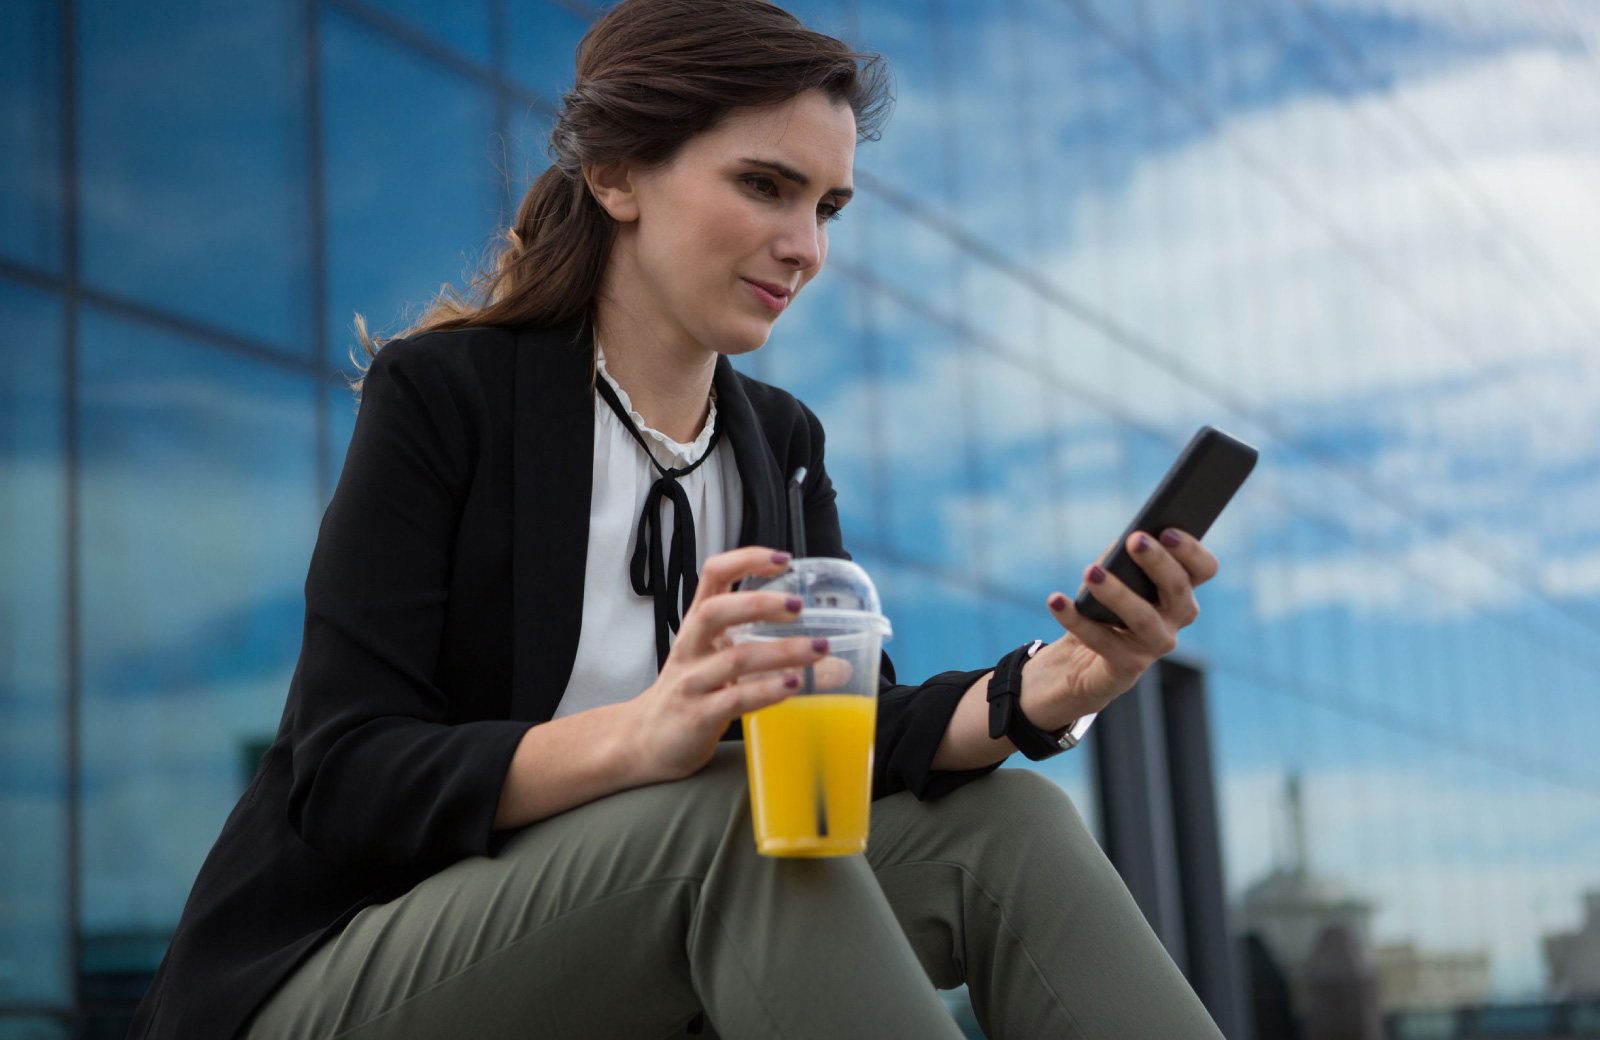 young professional looking woman looking at her phone with drink in hand